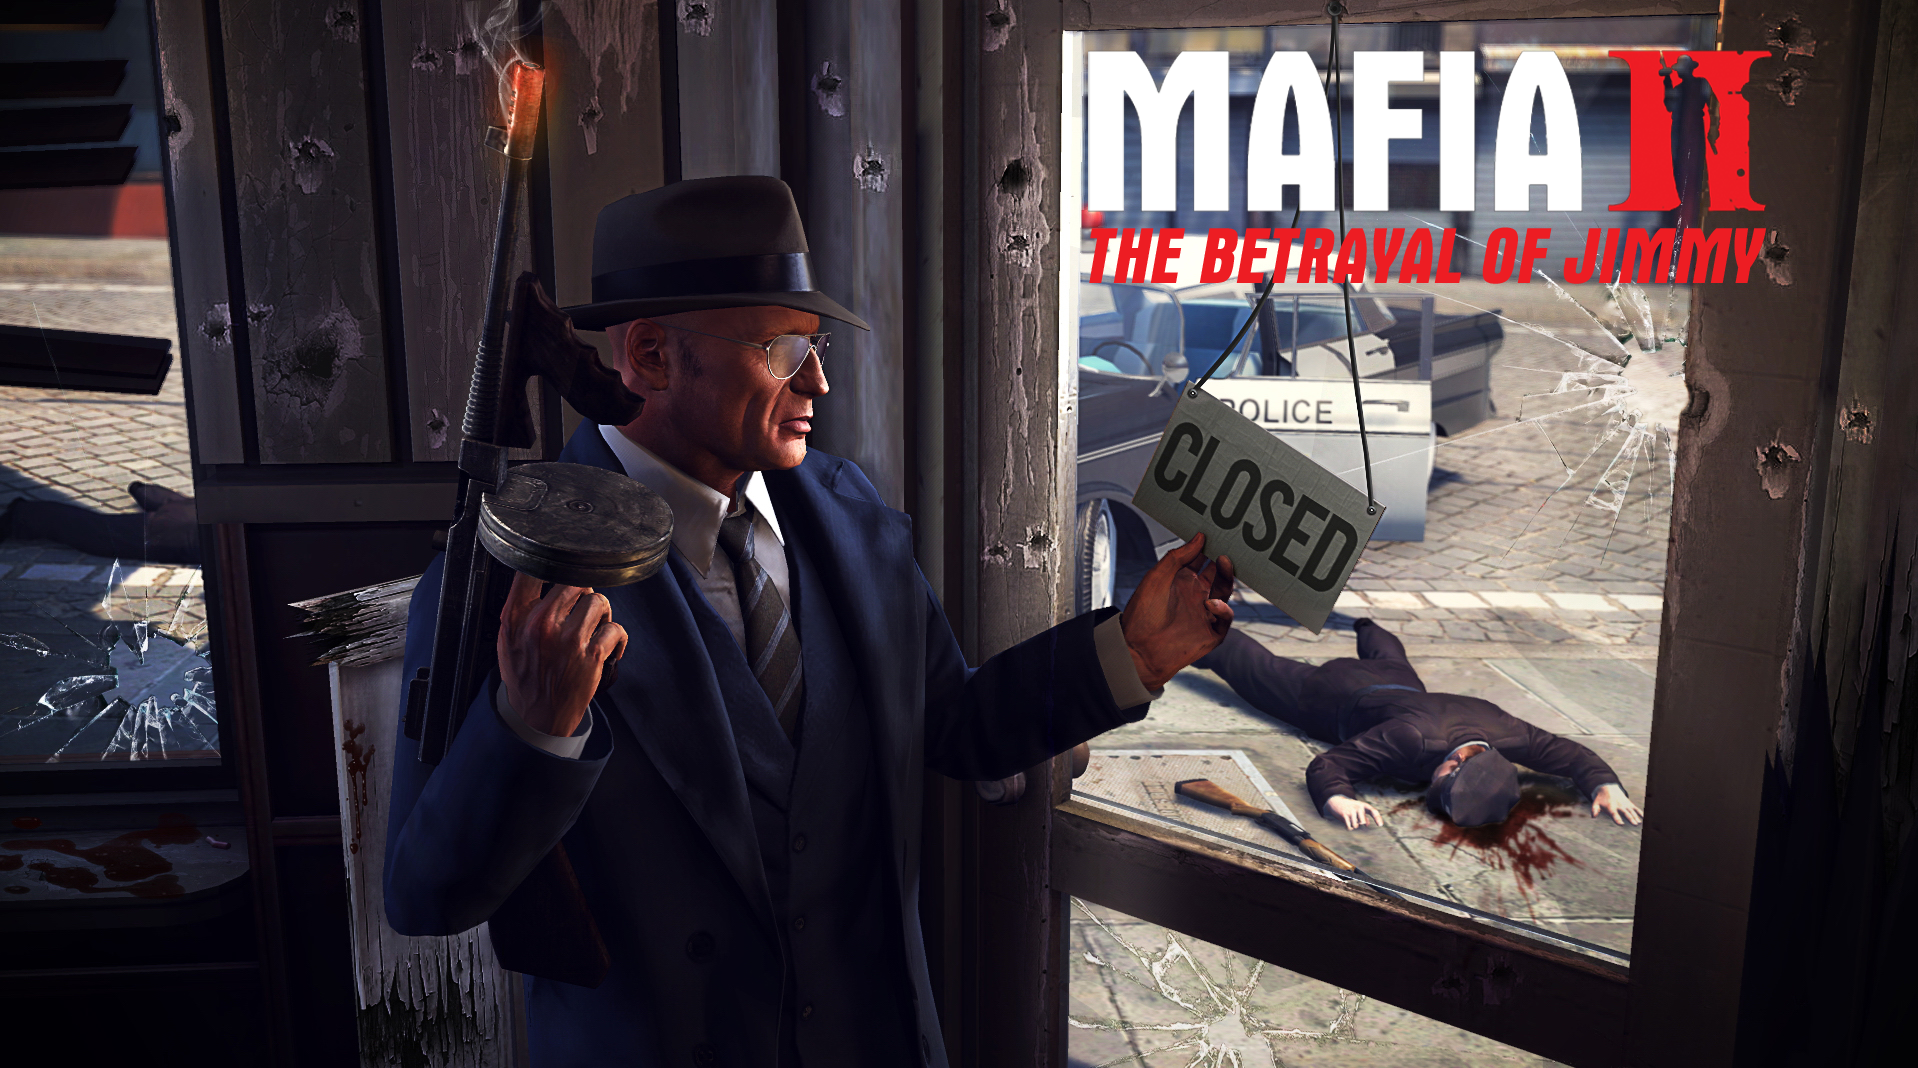 mafia 2 downloadable content pc